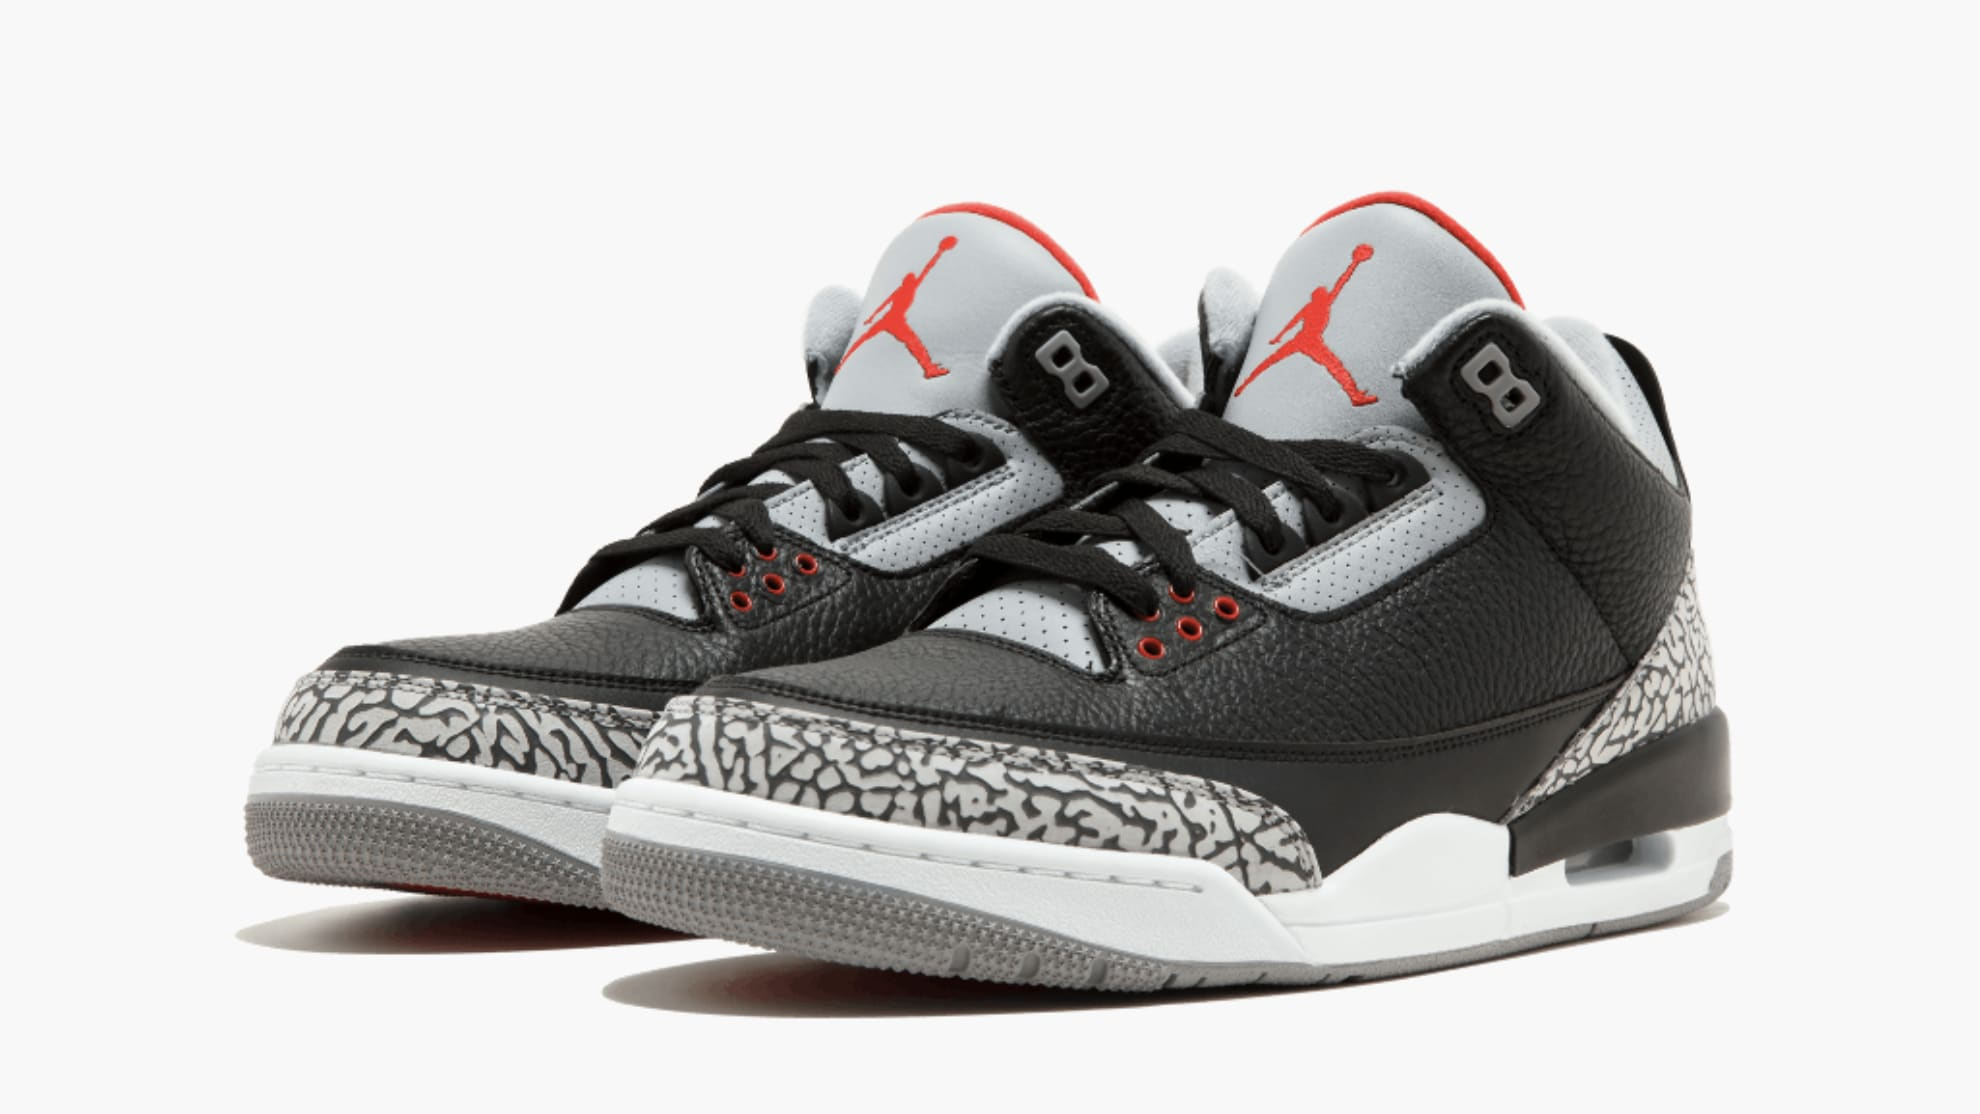 2018 NIKE AIR JORDAN RETRO 3 BLACK CEMENT GREY FIRE RED OG 854262-001